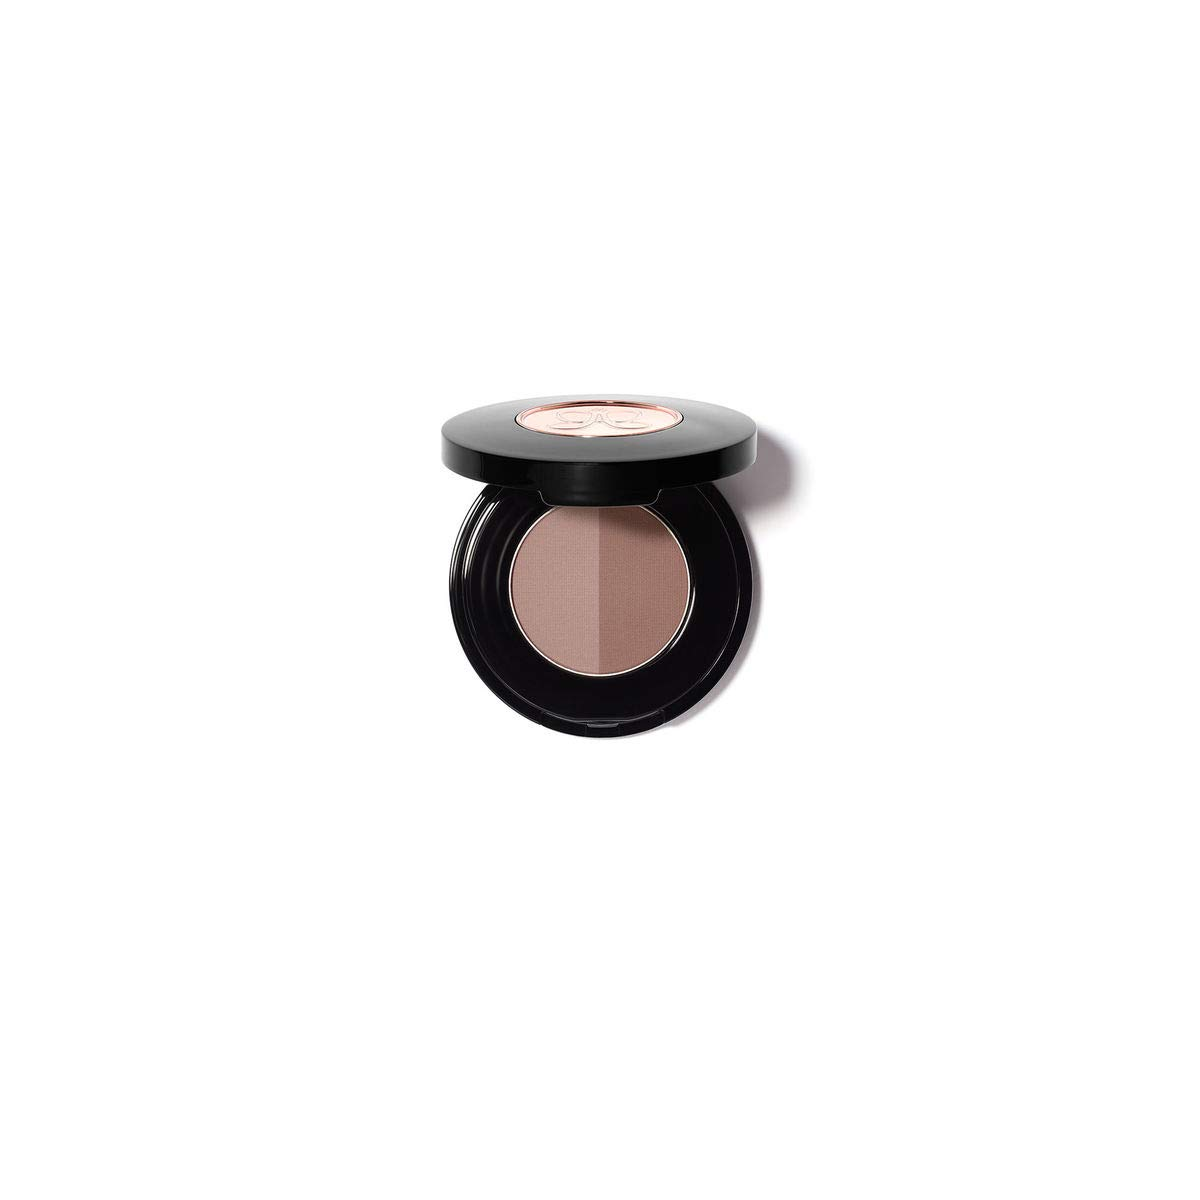 Anastasia Beverly Hills - Brow Powder Duo - Medium Brown